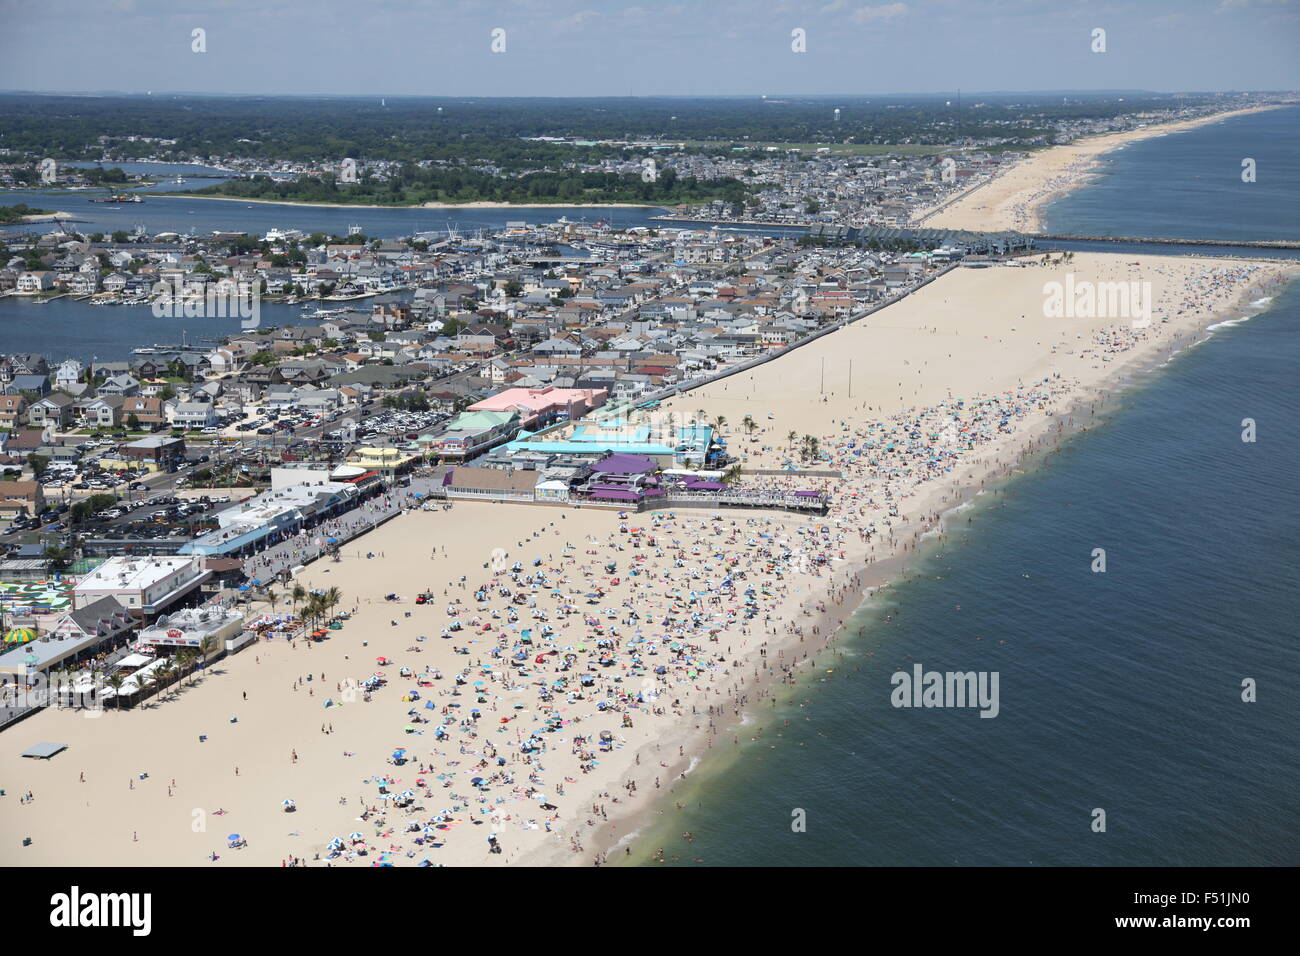 Aerial View Of Point Pleasant Beach New Jersey Stock Photo Royalty Free Image 89161772 Alamy